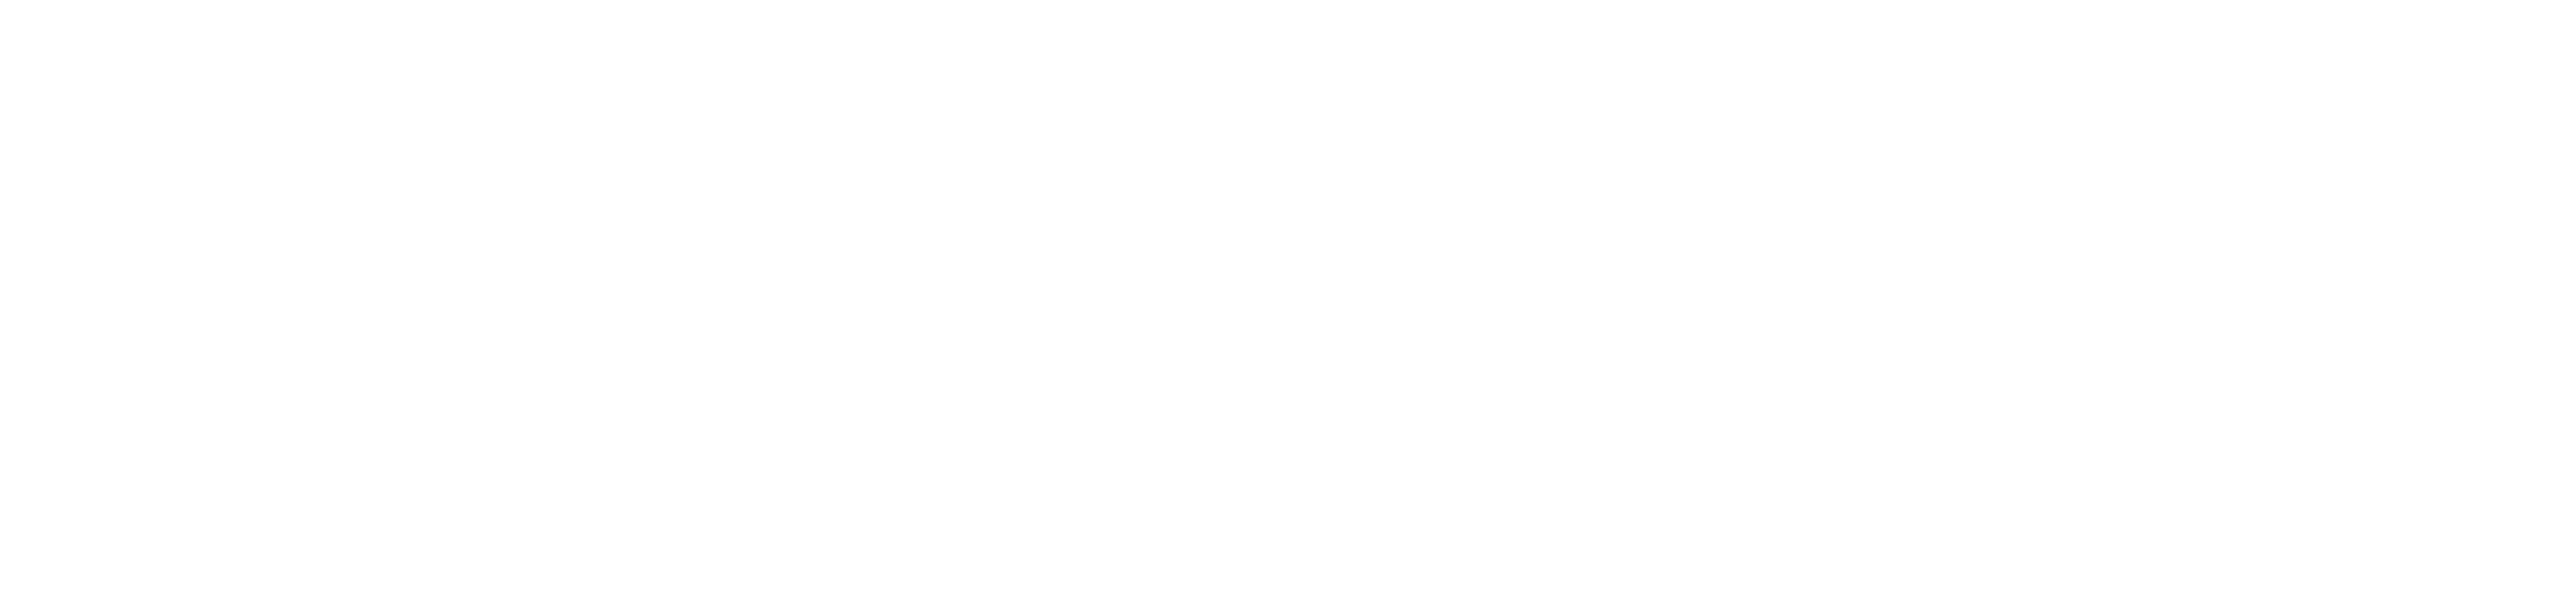 New Jersey Senior Medical Group logo